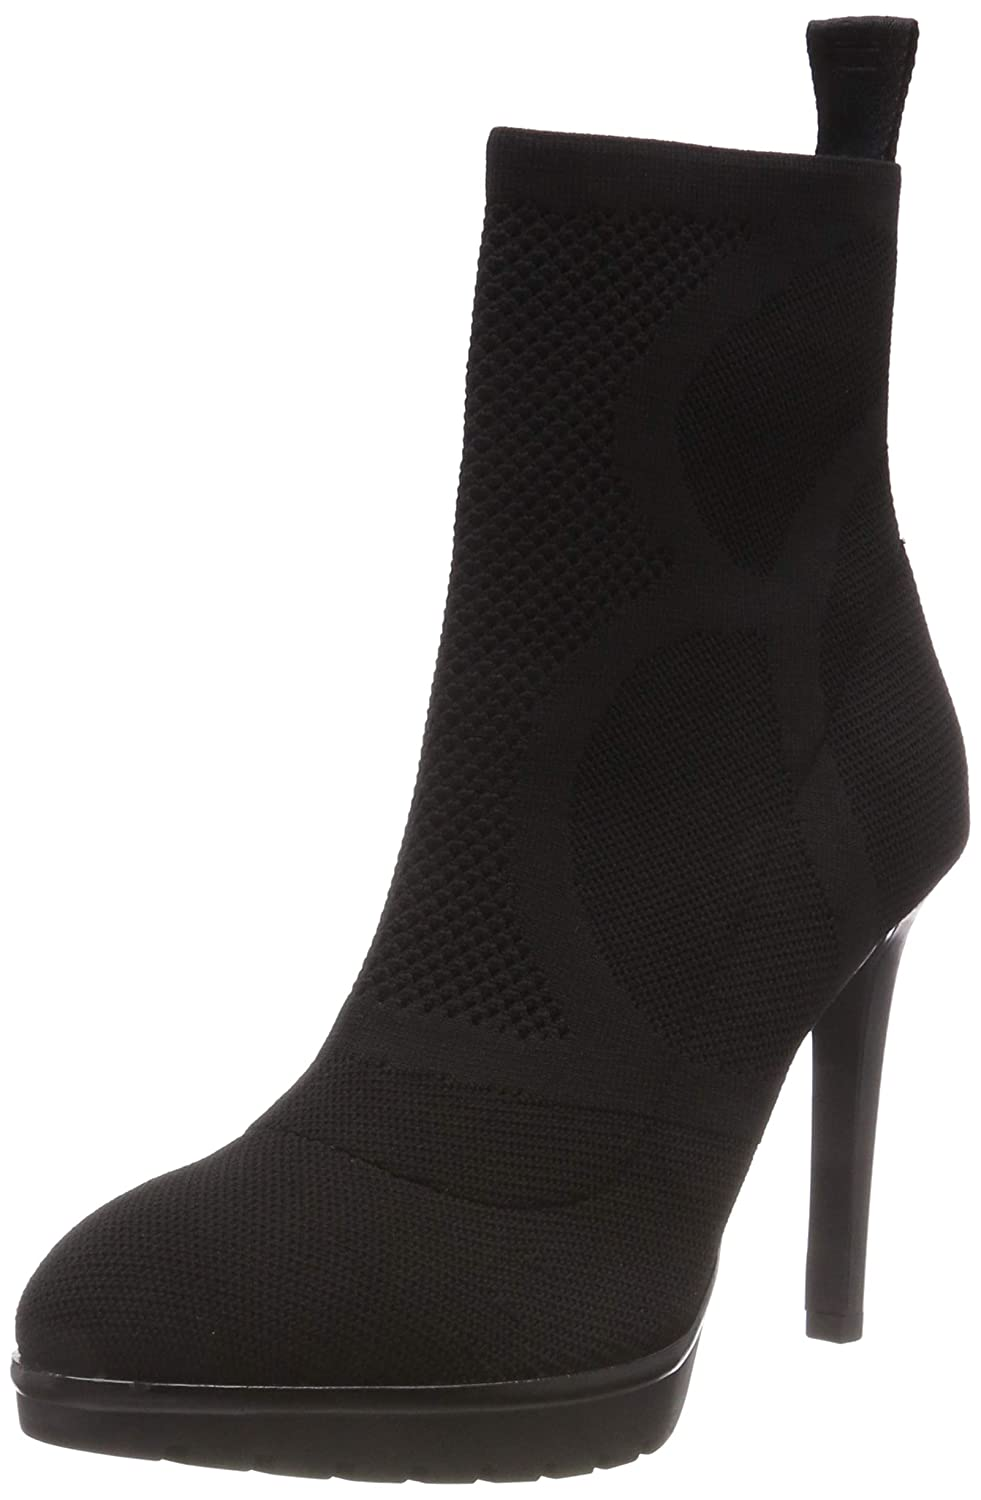 Replay 12648 Noir Enie, Botines Femme Noir (Black Replay 3) 290602d - deadsea.space